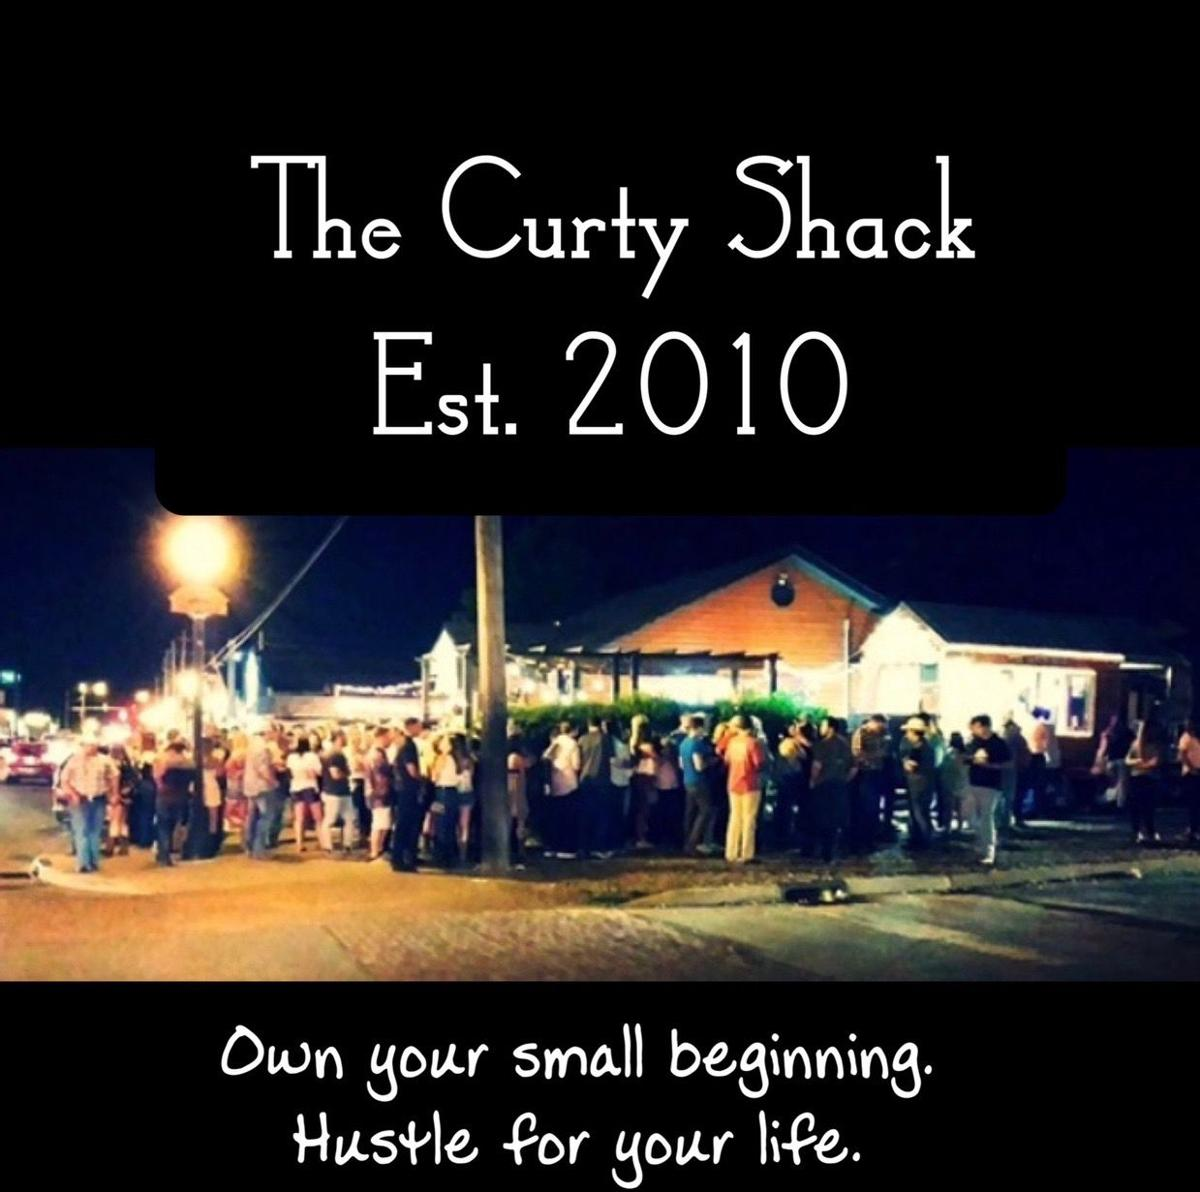 The Curty Shack